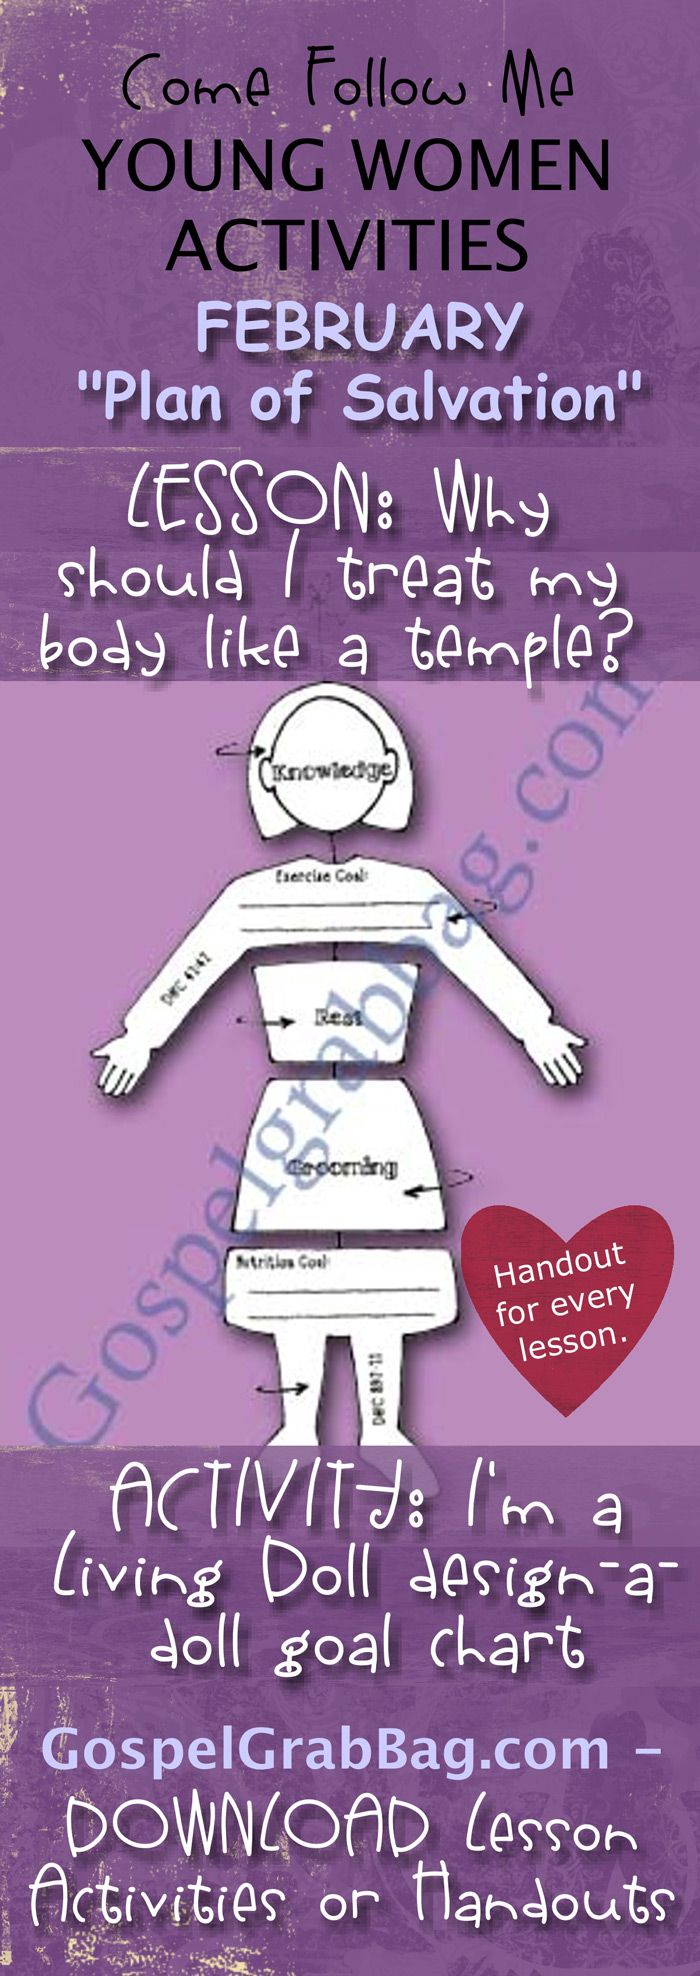 MY BODY IS A TEMPLE - PLAN OF SALVATION: Come Follow Me – LDS Young Women Activities, February Theme: The Plan of Salvation, Lesson Topic #7: Why should I treat my body like a temple? handout for every lesson, ACTIVITY: I'm a Living Doll design-a-doll mobile goal chart, Gospel grab bag – handouts to download from gospelgrabbag.com